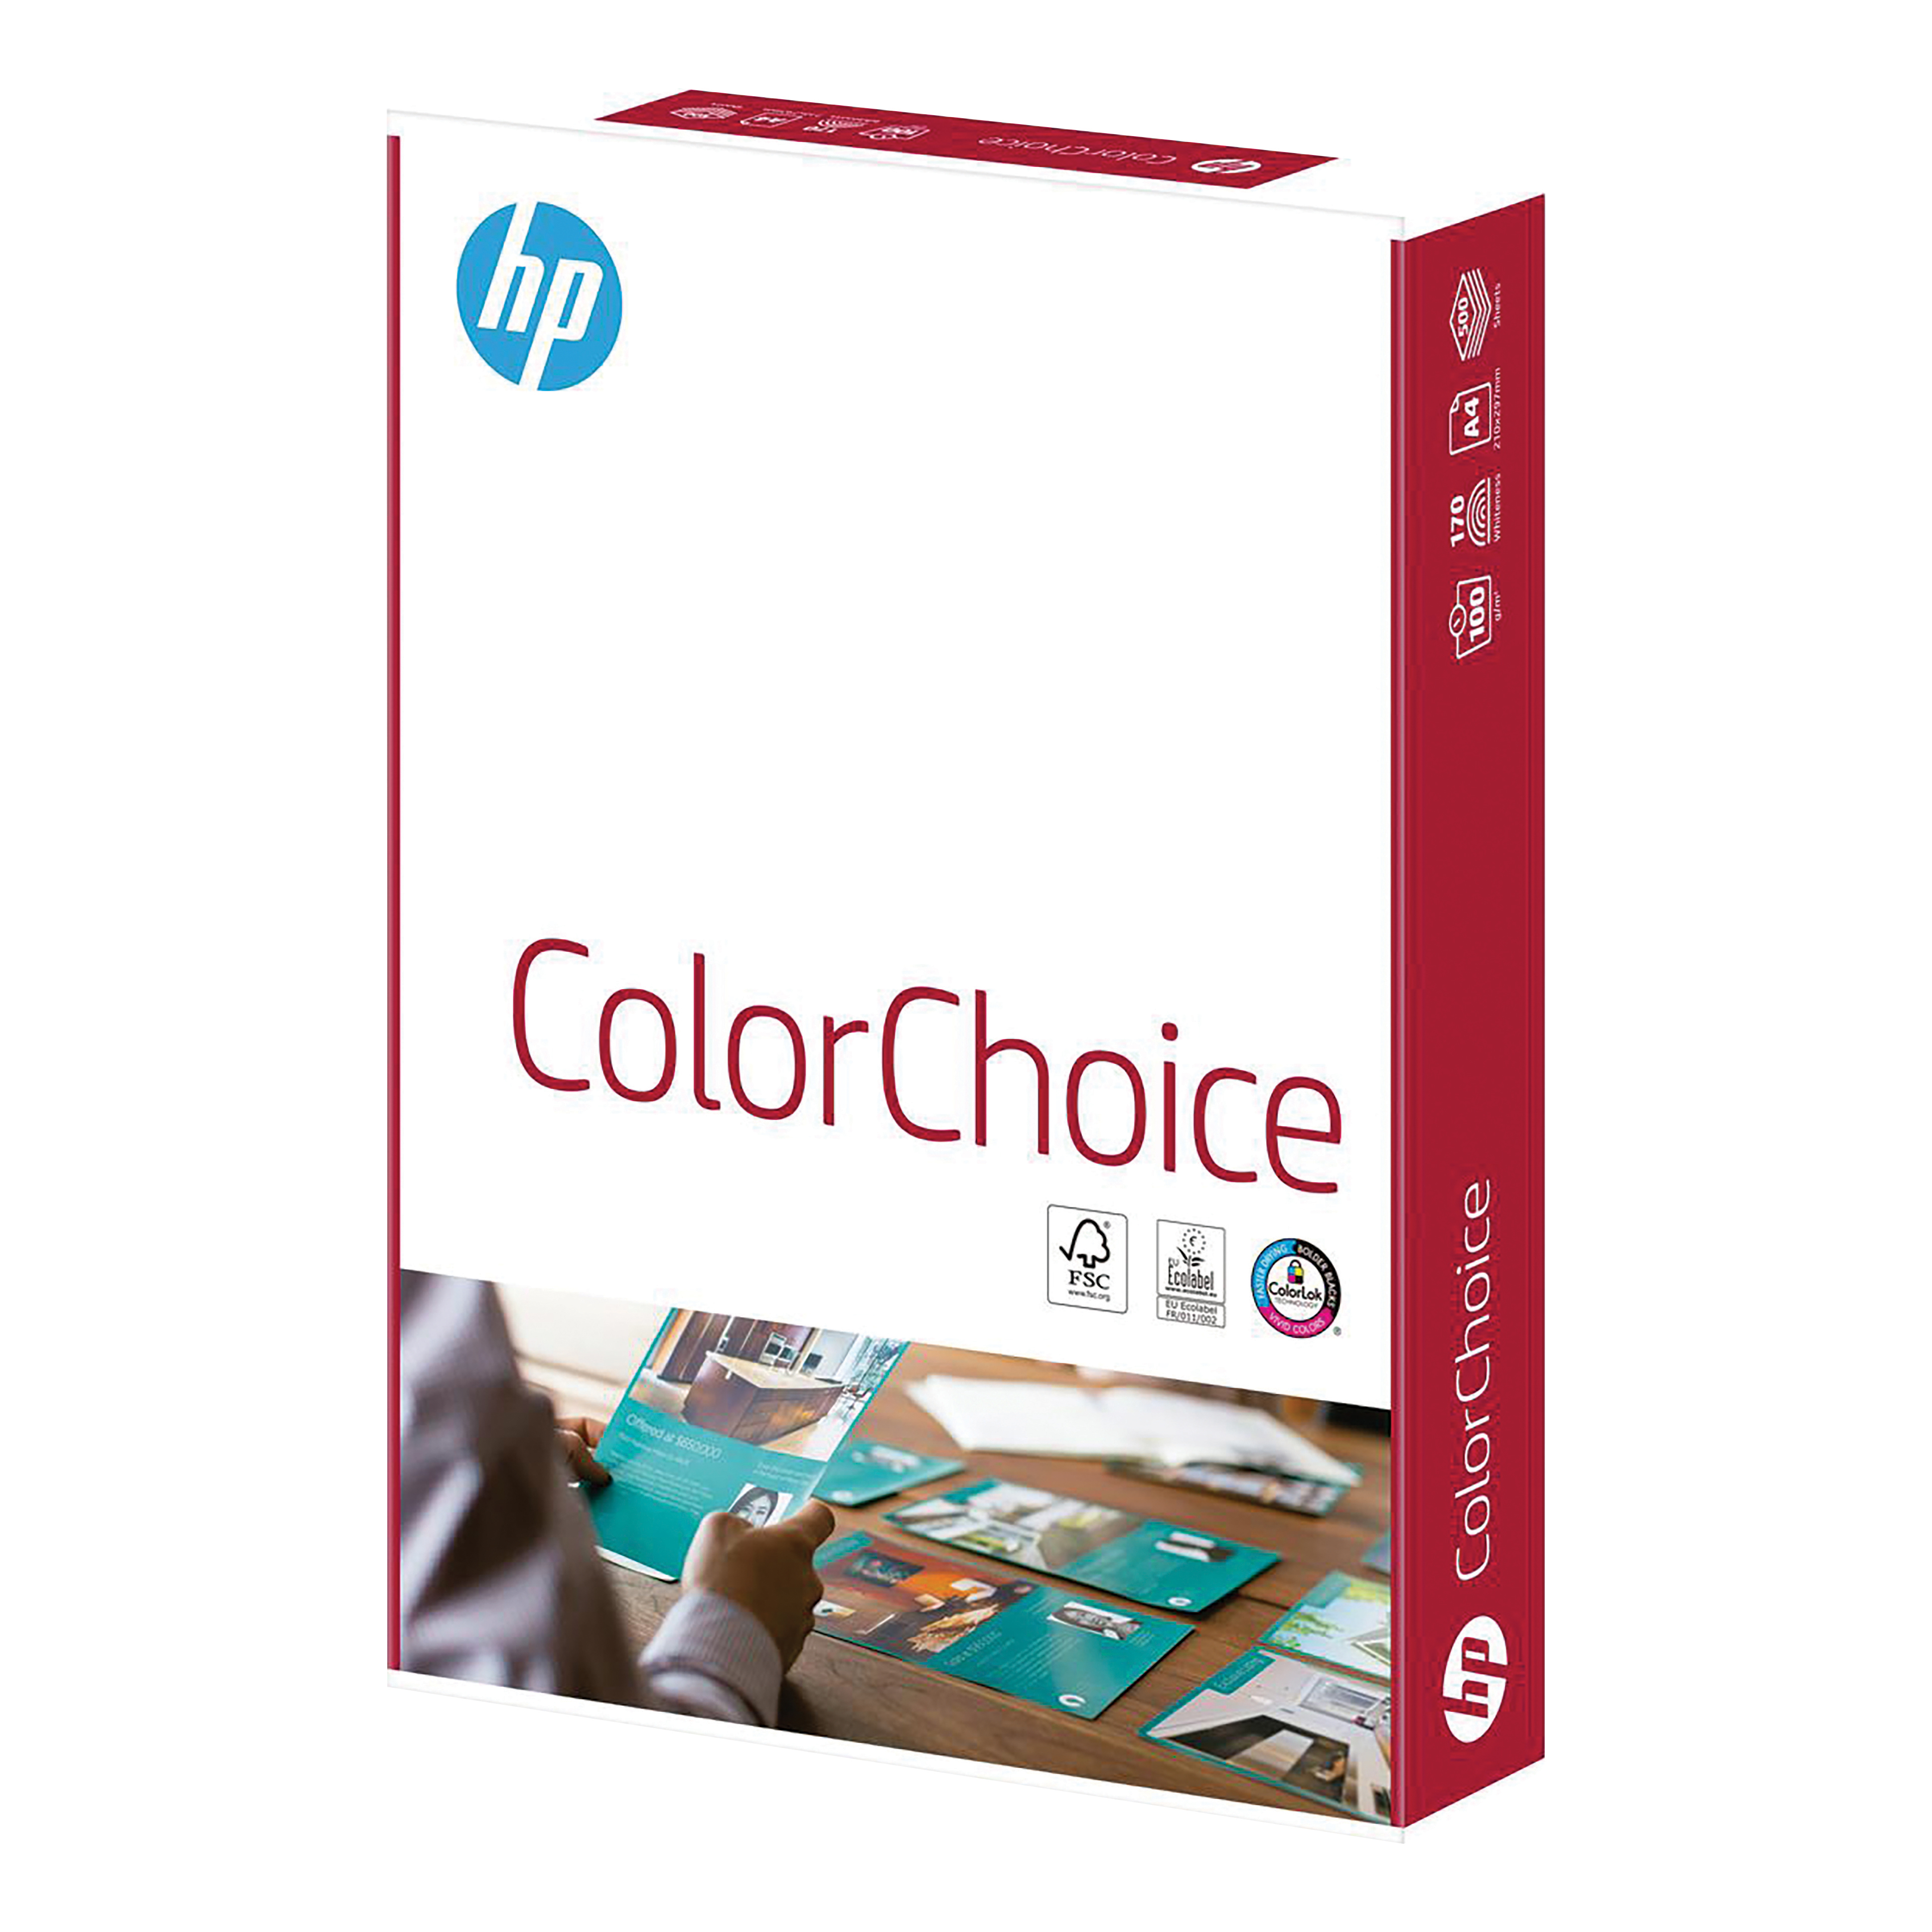 Hewlett Packard HP Color Choice Paper Smooth FSC Colorlok 100gsm A4 White Ref 94291 500 Sheets